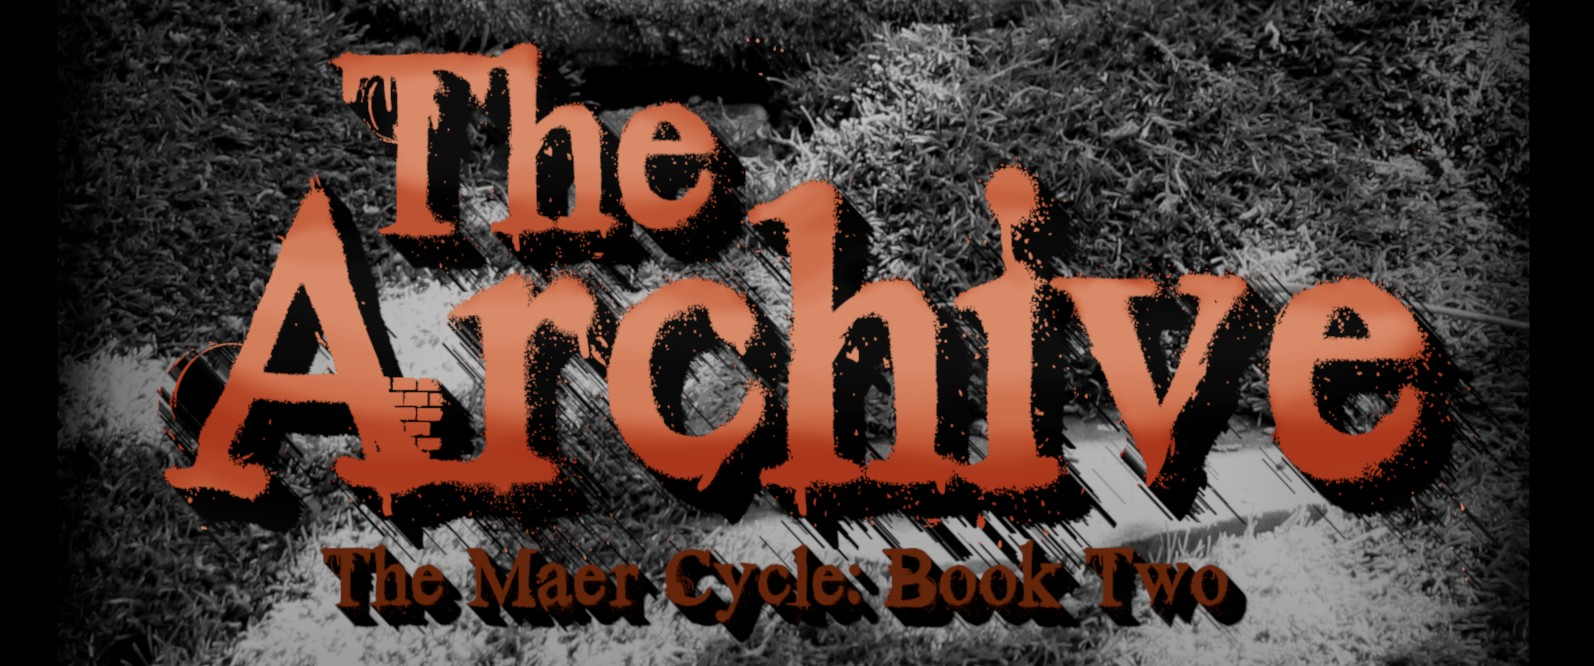 Cover Reveal: The Archive